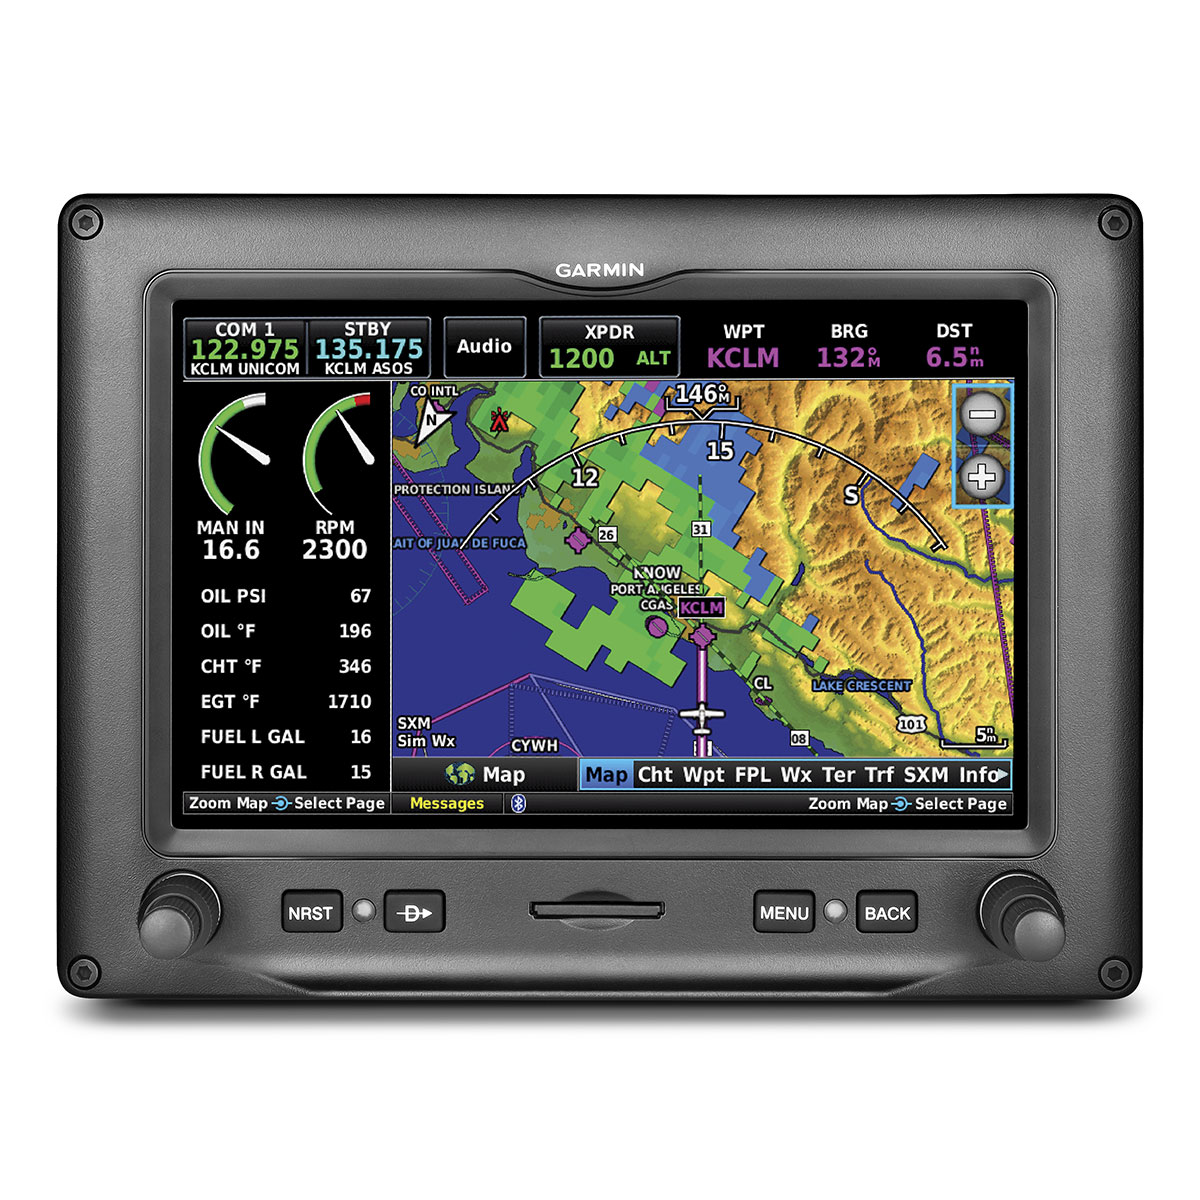 /images/productimages/GARMIN/G3XTOUCH-7INCH-6.jpg image